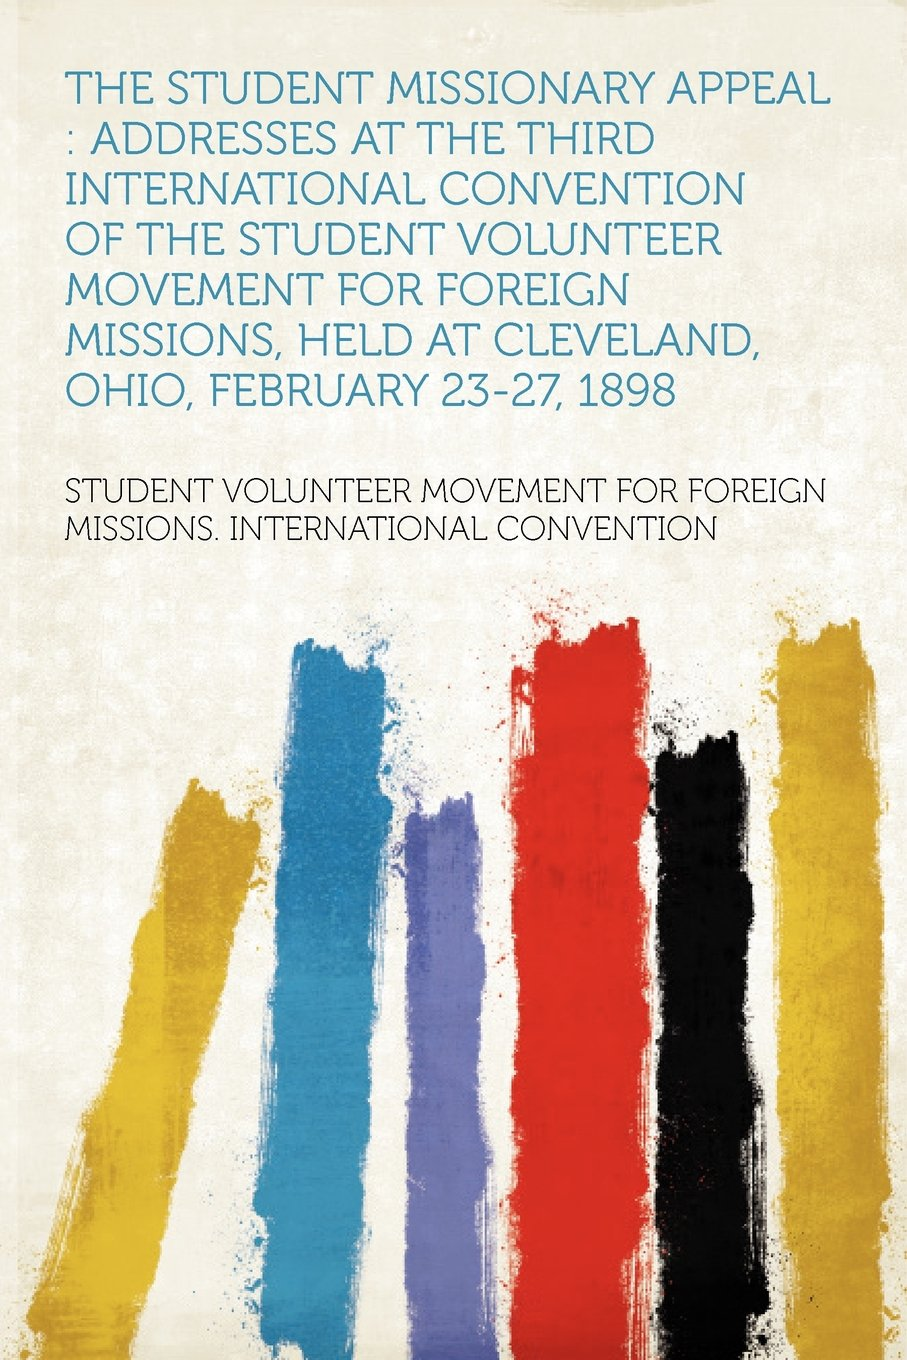 The Student Missionary Appeal: Addresses at the Third International Convention of the Student Volunteer Movement for Foreign Missions, Held at Cleveland, Ohio, February 23-27, 1898 pdf